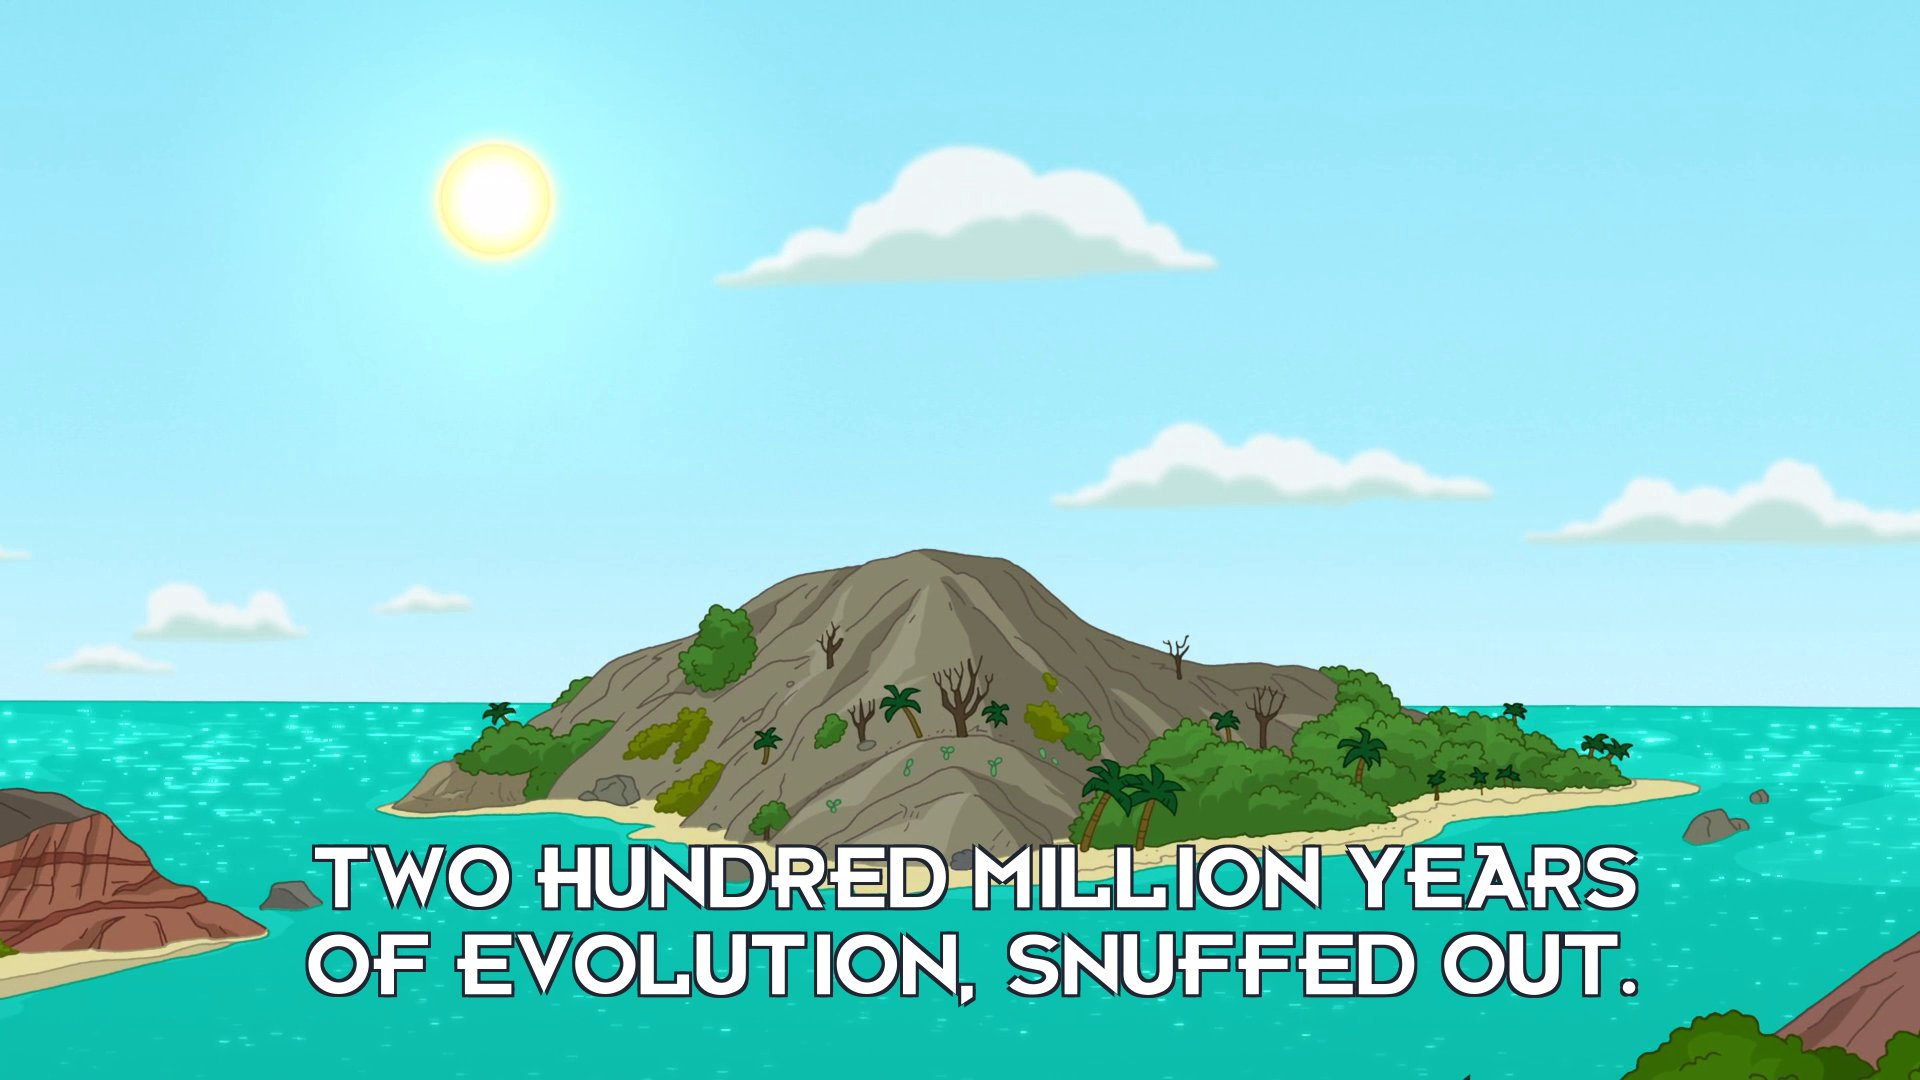 Narrator: Two hundred million years of evolution, snuffed out.